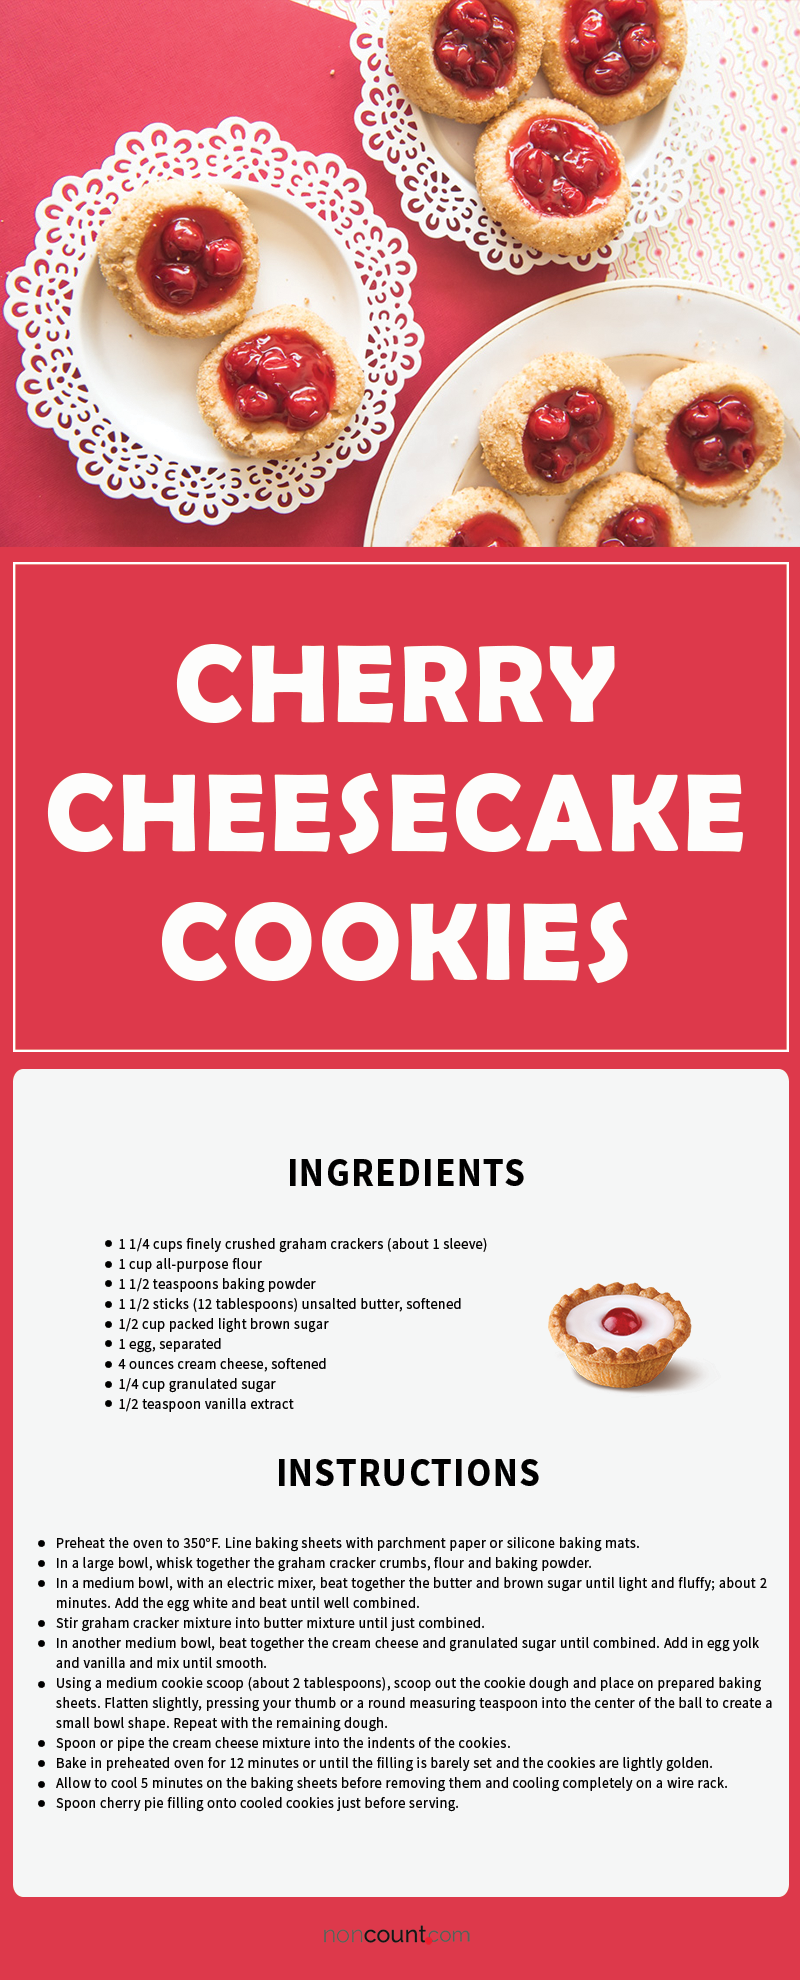 Cherry Cheesecake Cookies Recipe Image with details